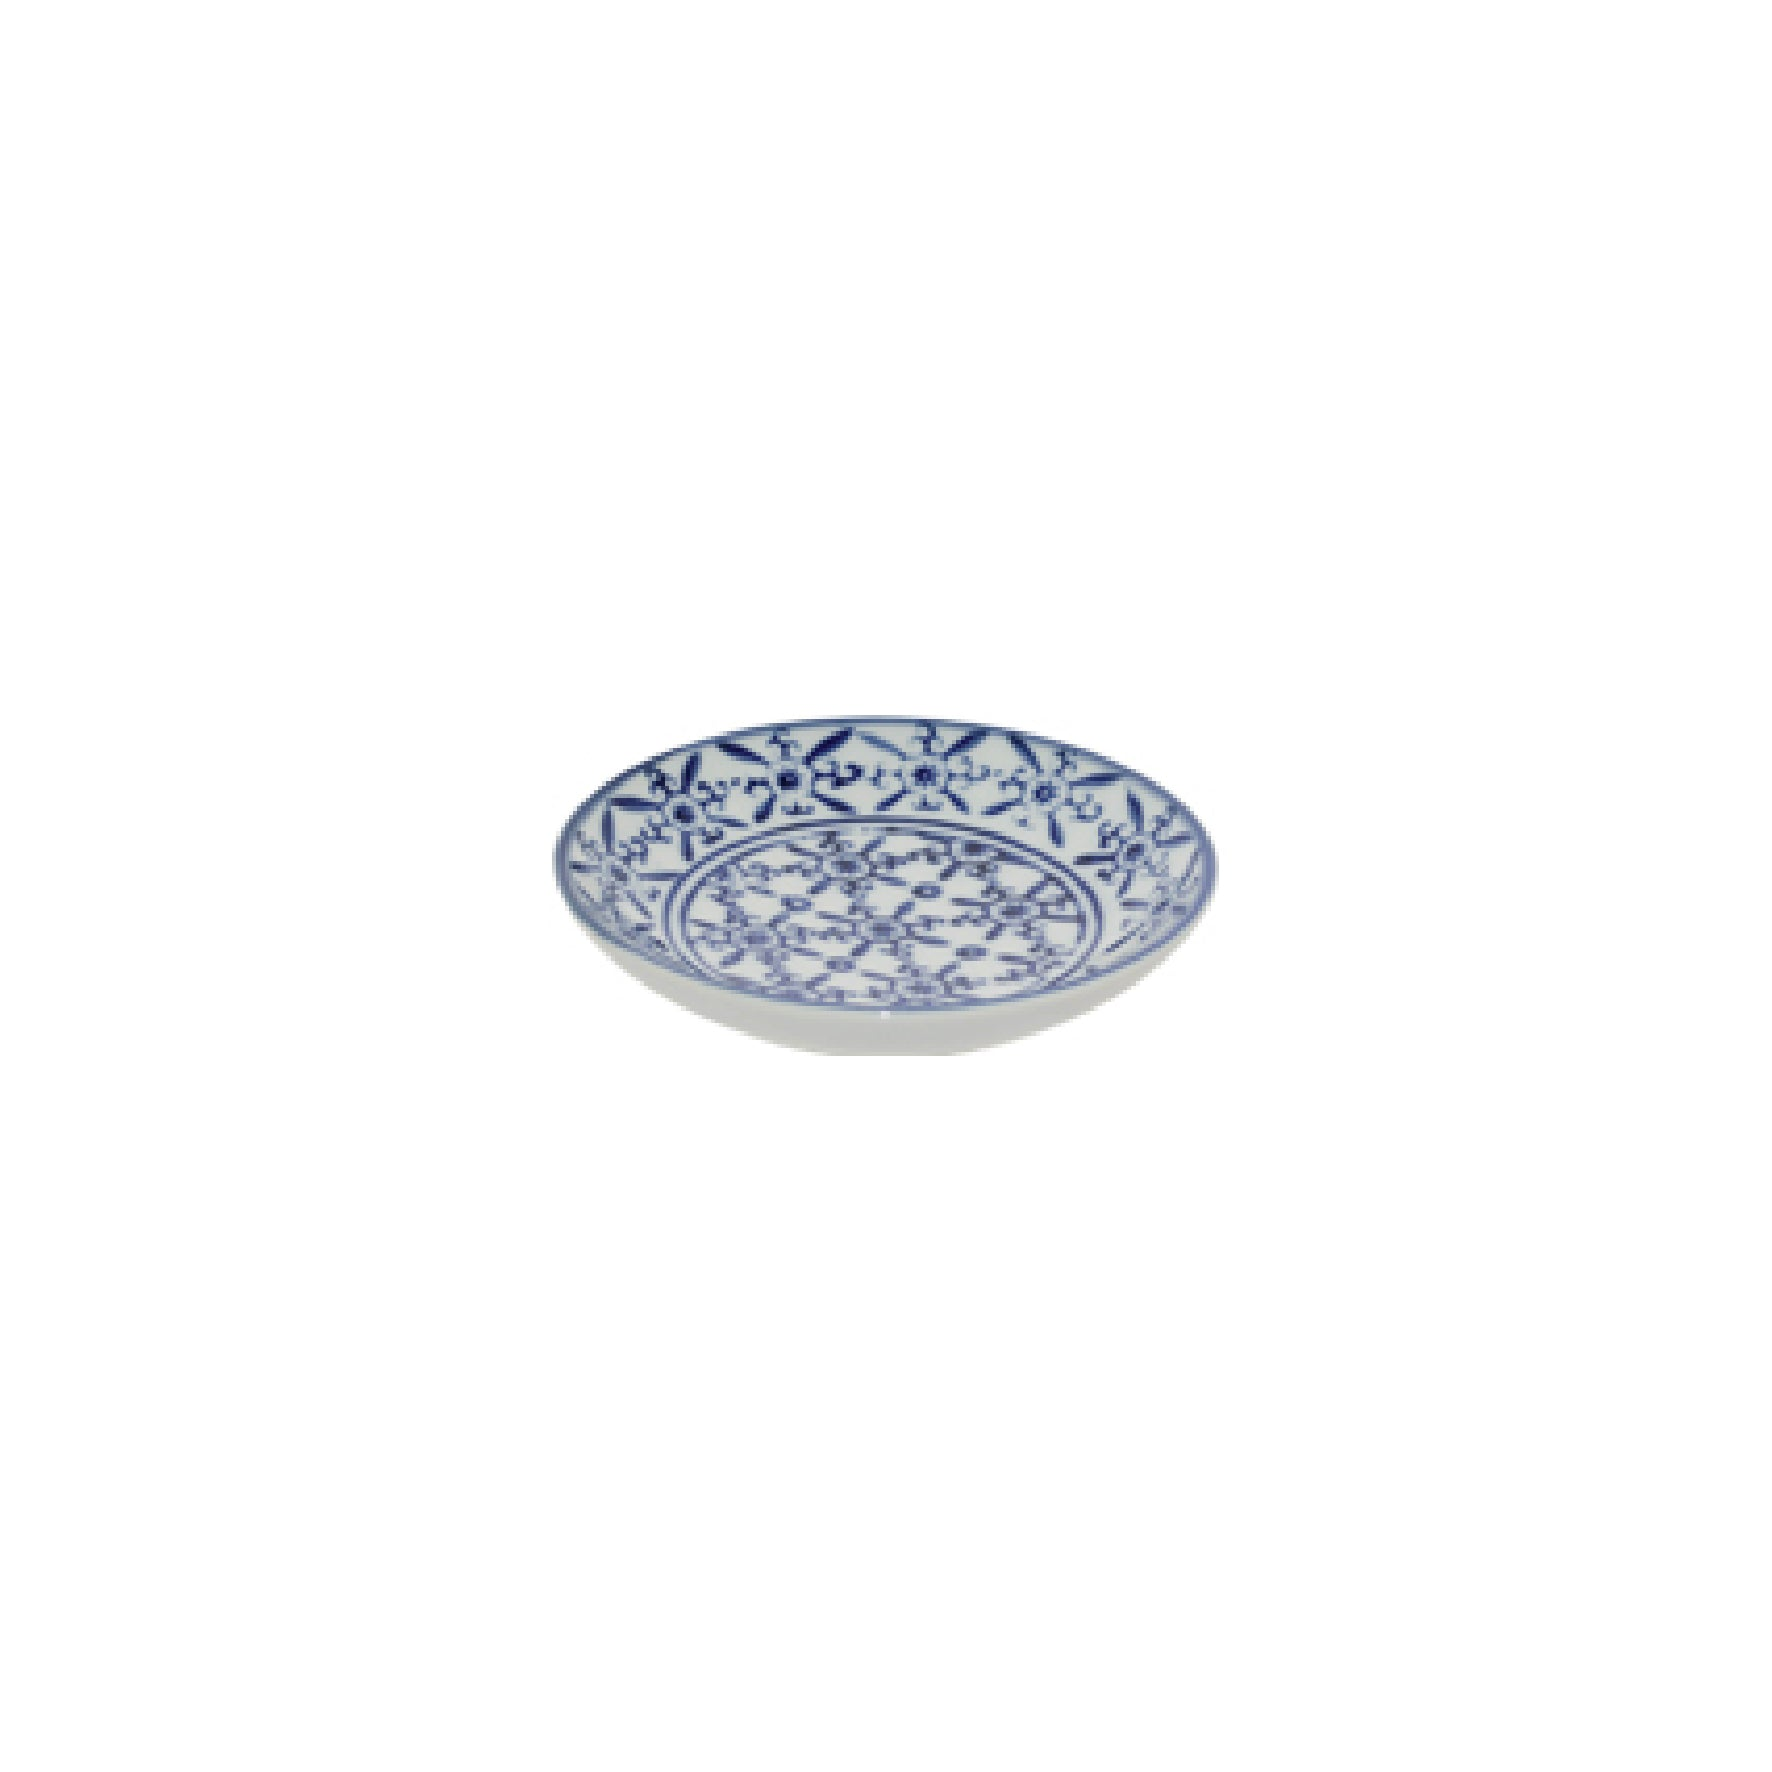 JARVIS SMALL FLAT BOWL